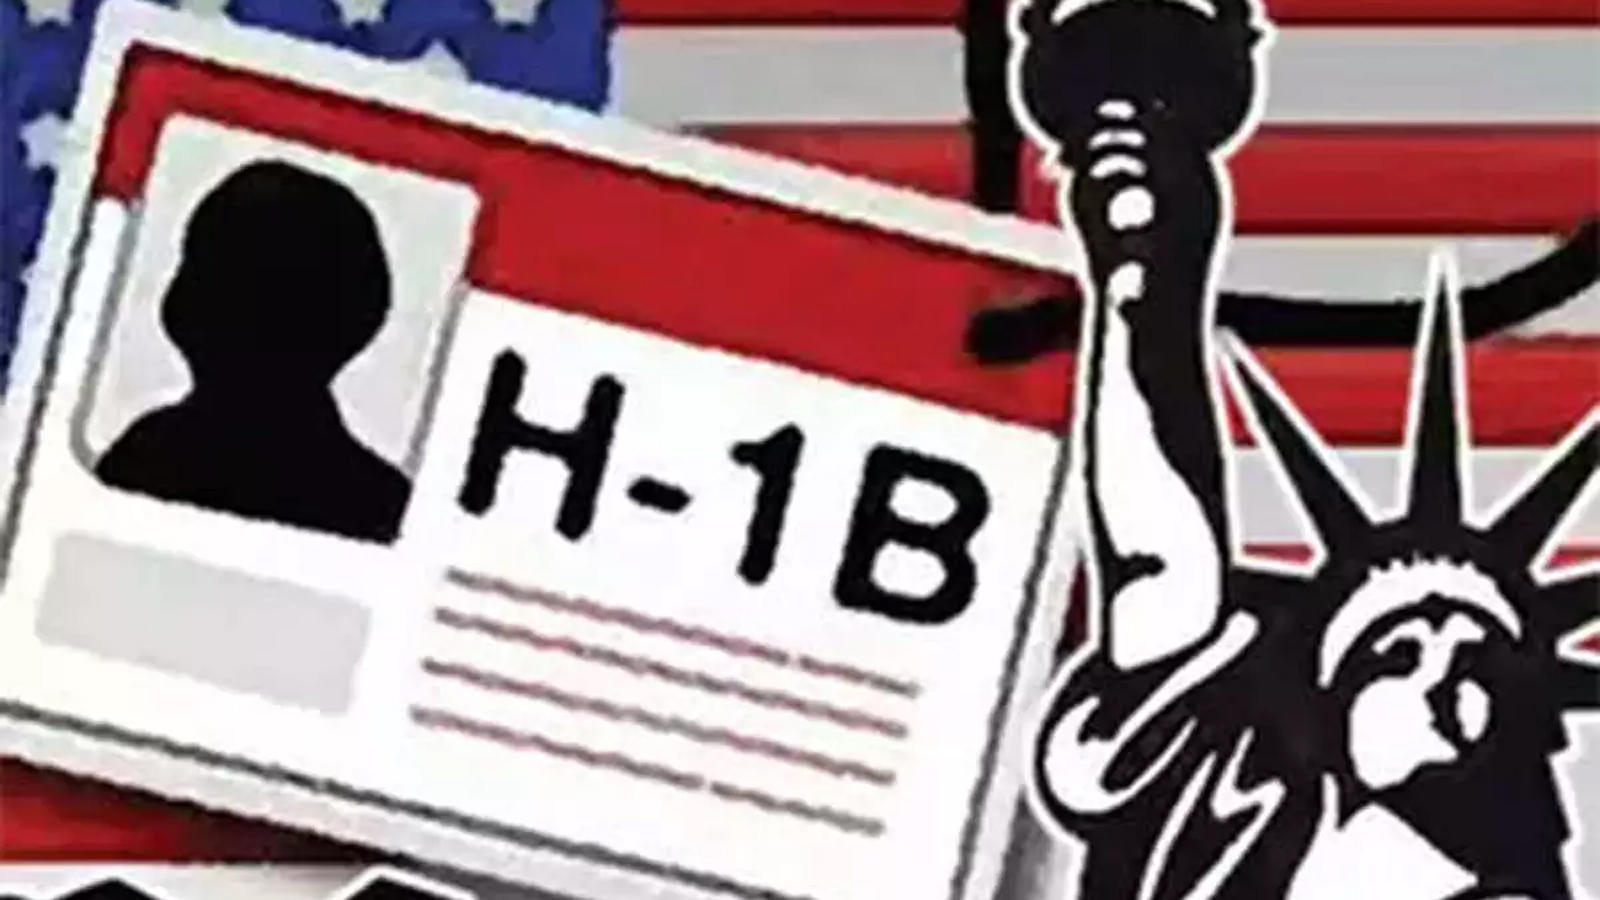 explain-h-1b-delays-denials-us-court-orders-immigration-agency